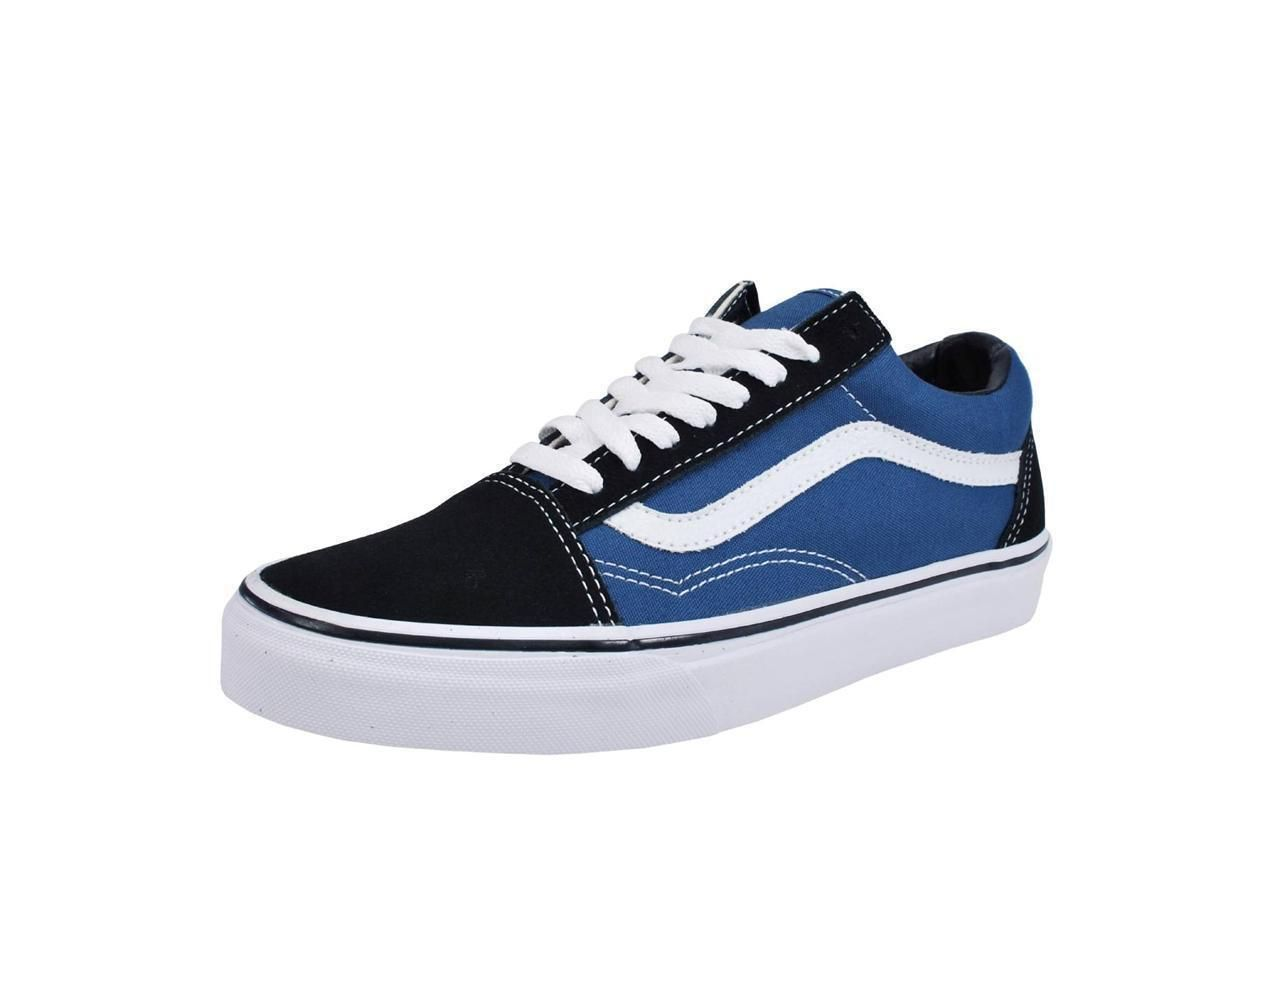 5d384715e31e Vans Men Women Navy Blue White Canvas Suede Mix Old Skool Skate Sneakers